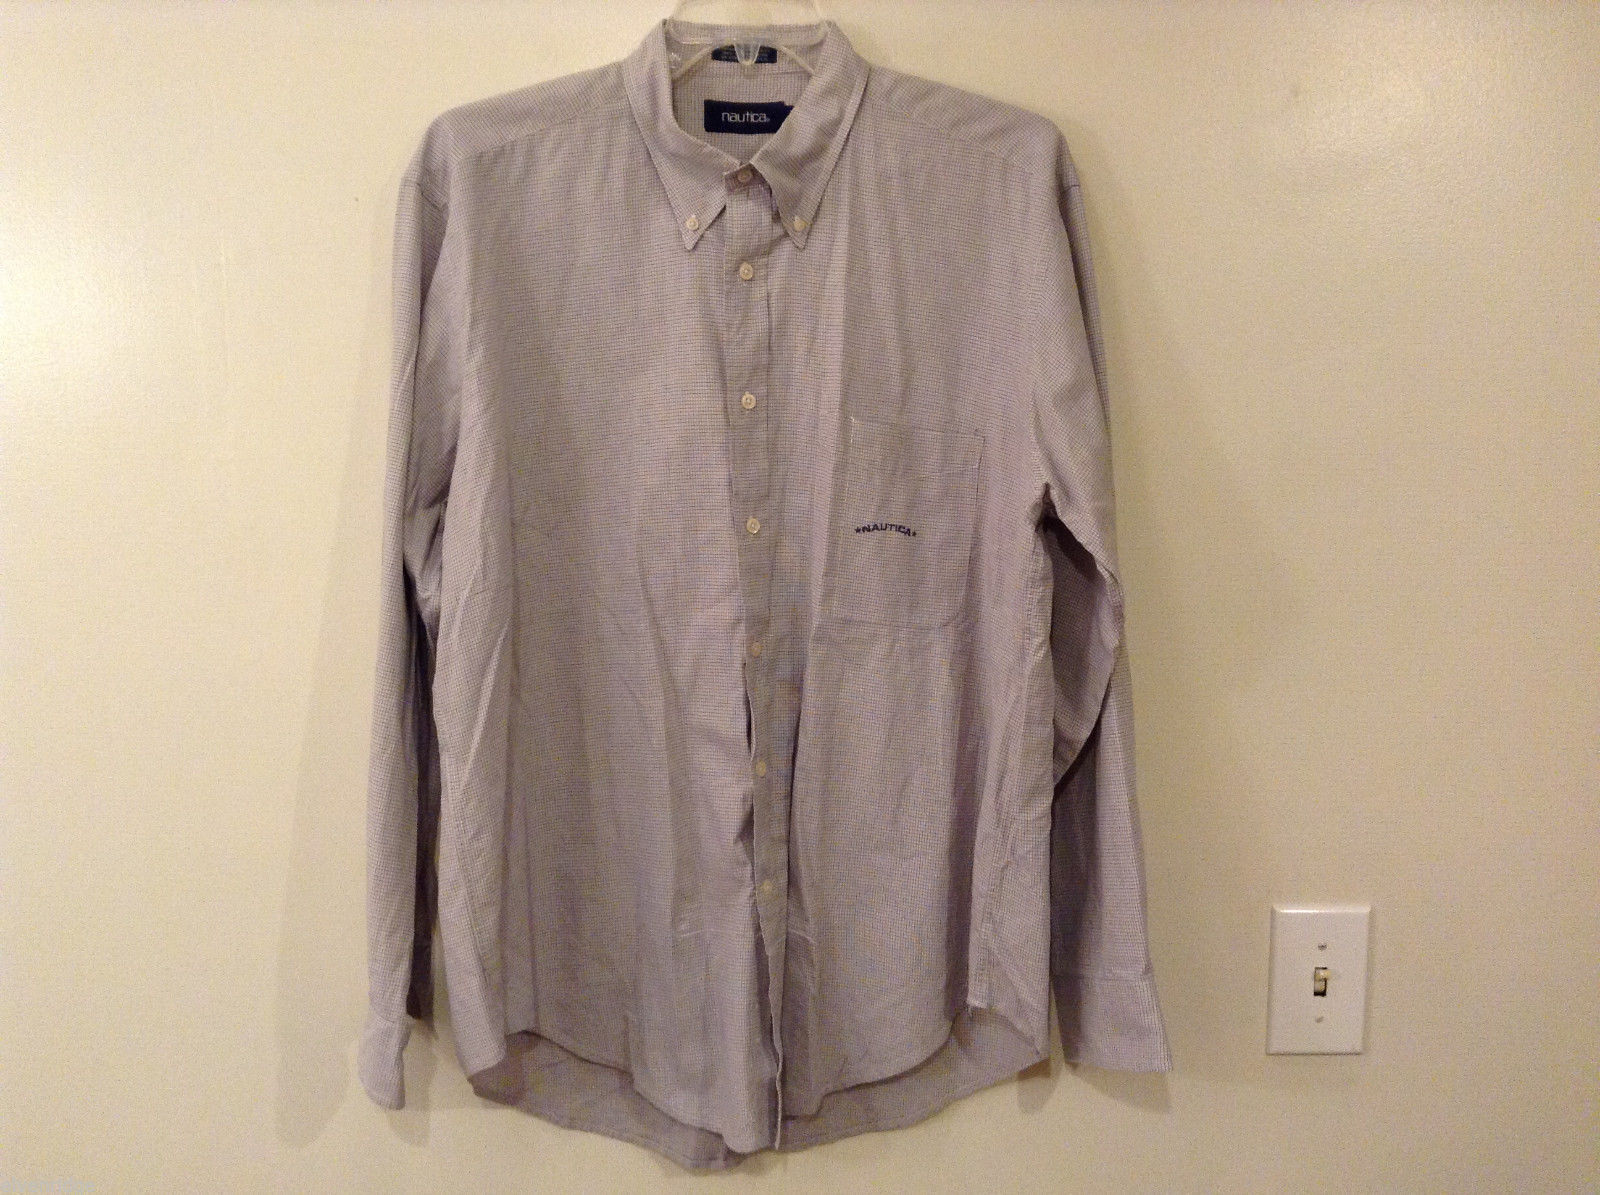 Nautica Men's Size 2XL Dress Shirt White Button-Down Collar Gray Blue Grid Check